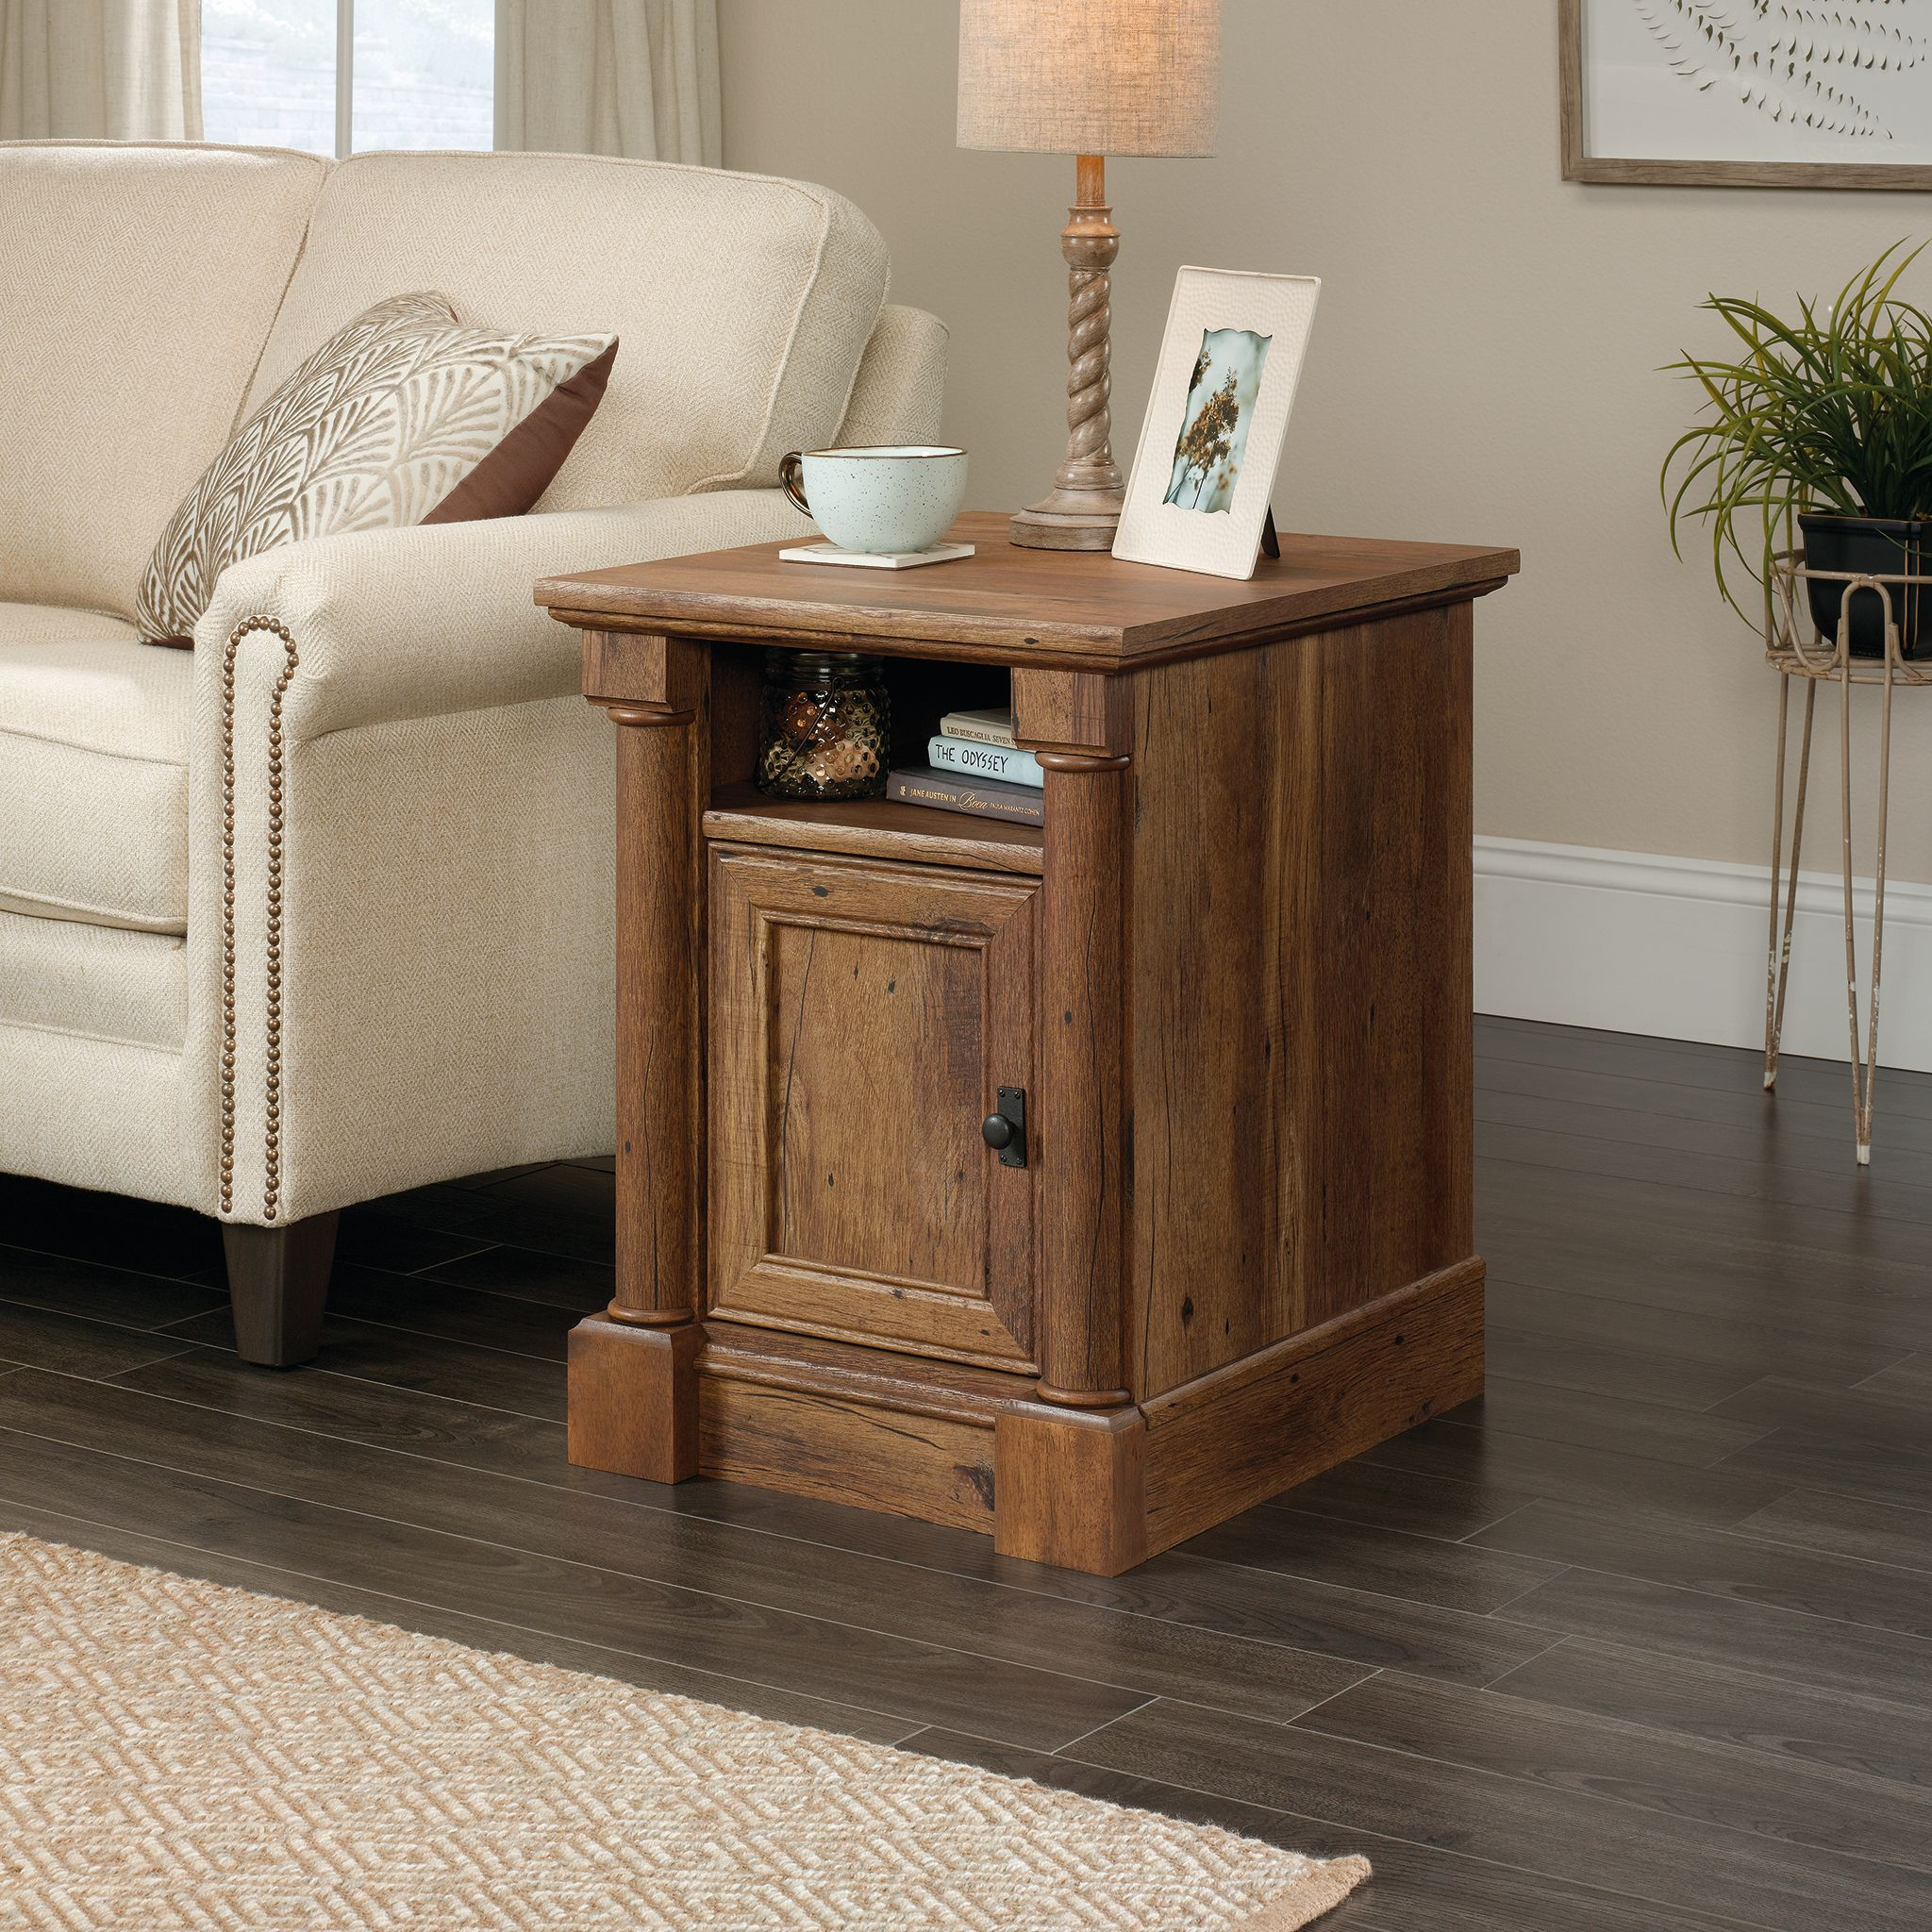 Sauder Palladia Side Table, Vintage Oak Finish